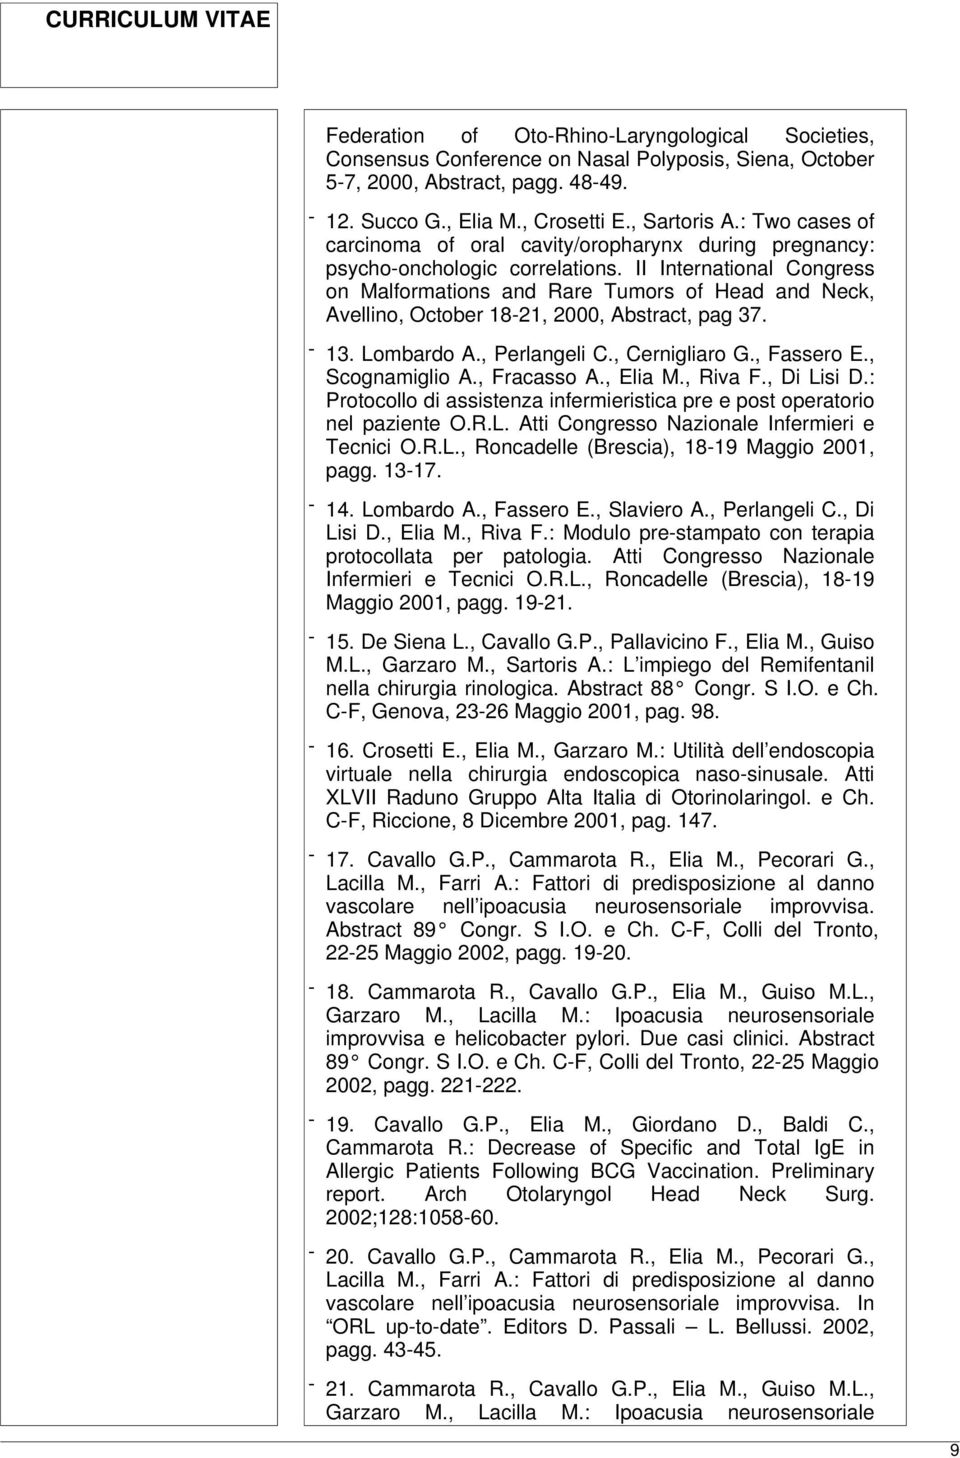 II International Congress on Malformations and Rare Tumors of Head and Neck, Avellino, October 18-21, 2000, Abstract, pag 37. - 13. Lombardo A., Perlangeli C., Cernigliaro G., Fassero E.